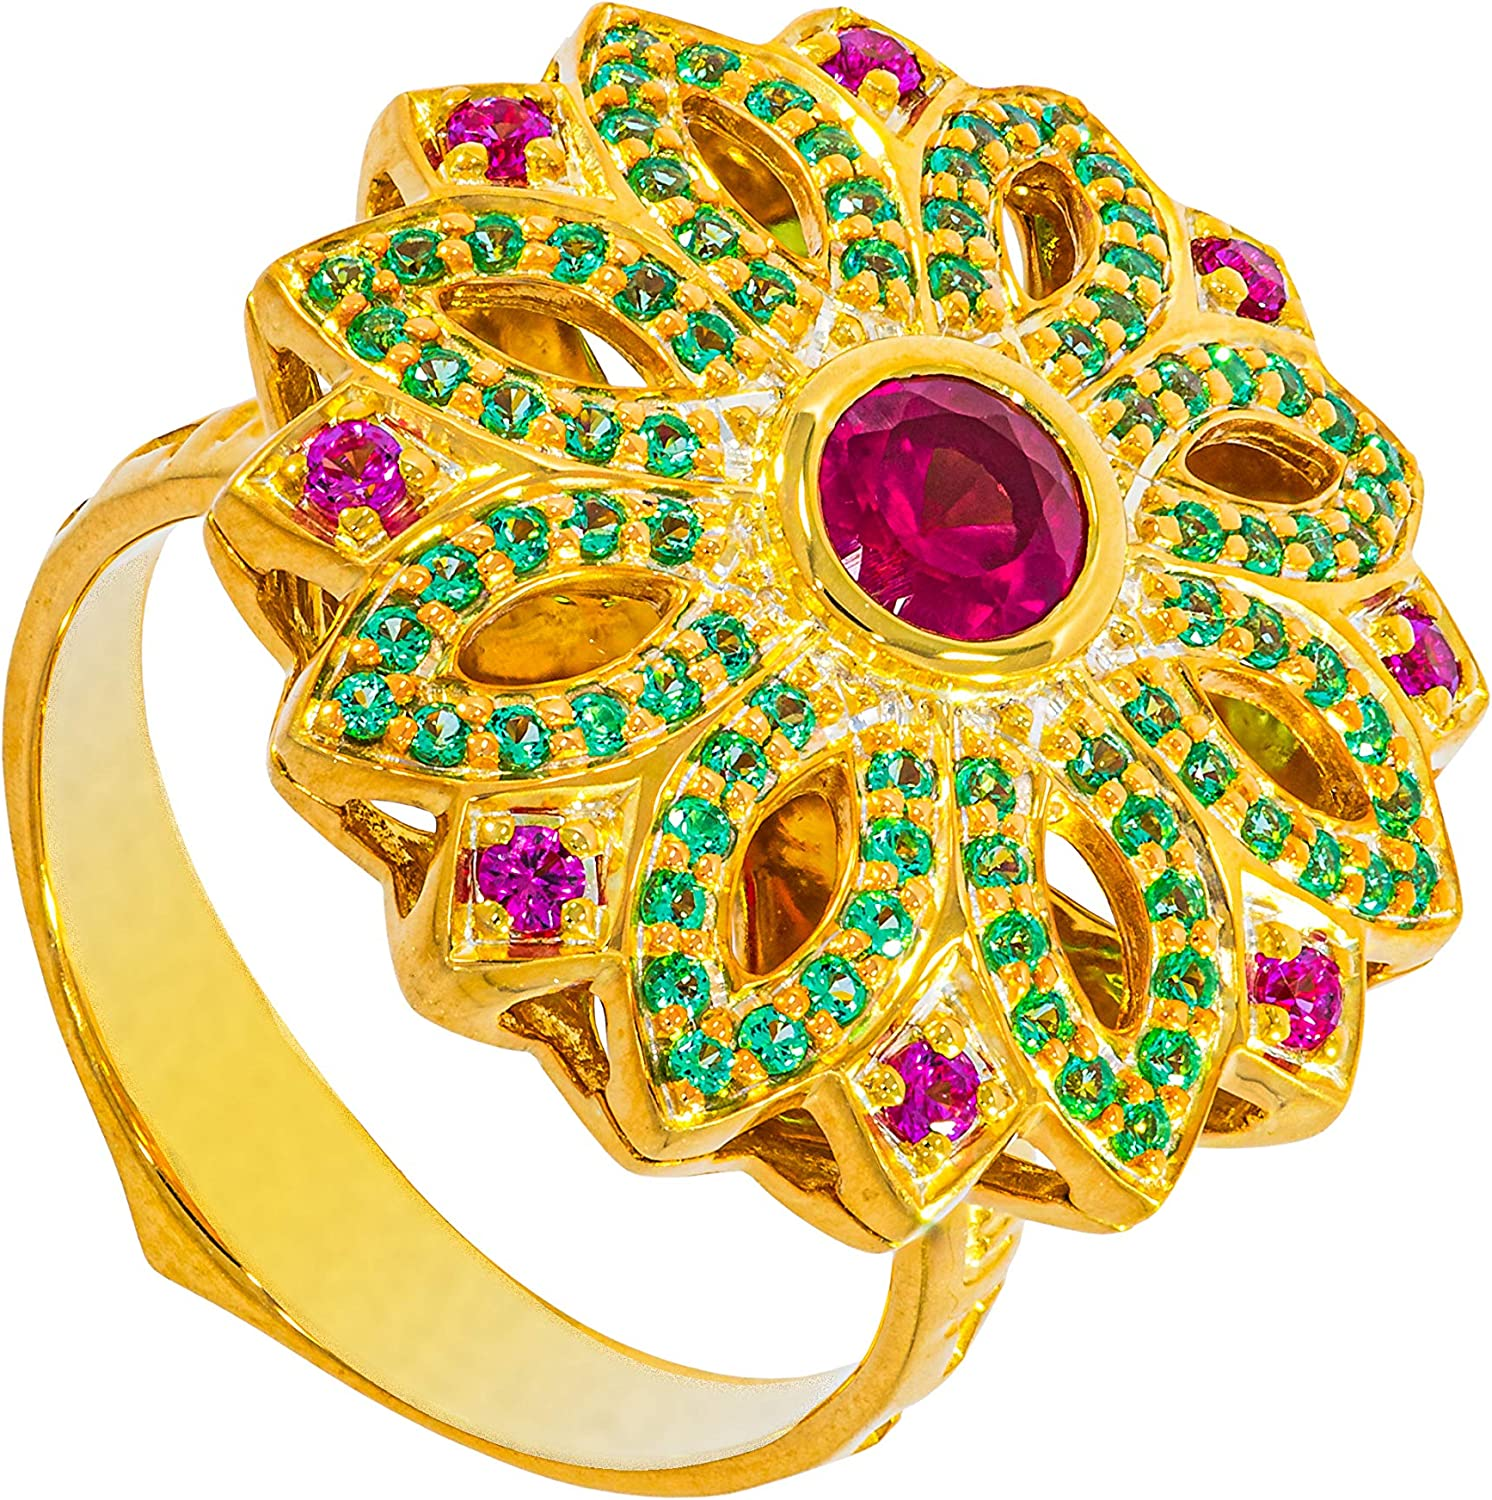 Carrington Collection Golden Plated 22K Ring with CZ Ruby and CZ Emeralds 97 pcs Stones Total Weight 0.92 Ct for Girls Woman Ladies and Ring Lovers Birthday Gift Engagement Anniversary Mother's Day Gift size 7.75